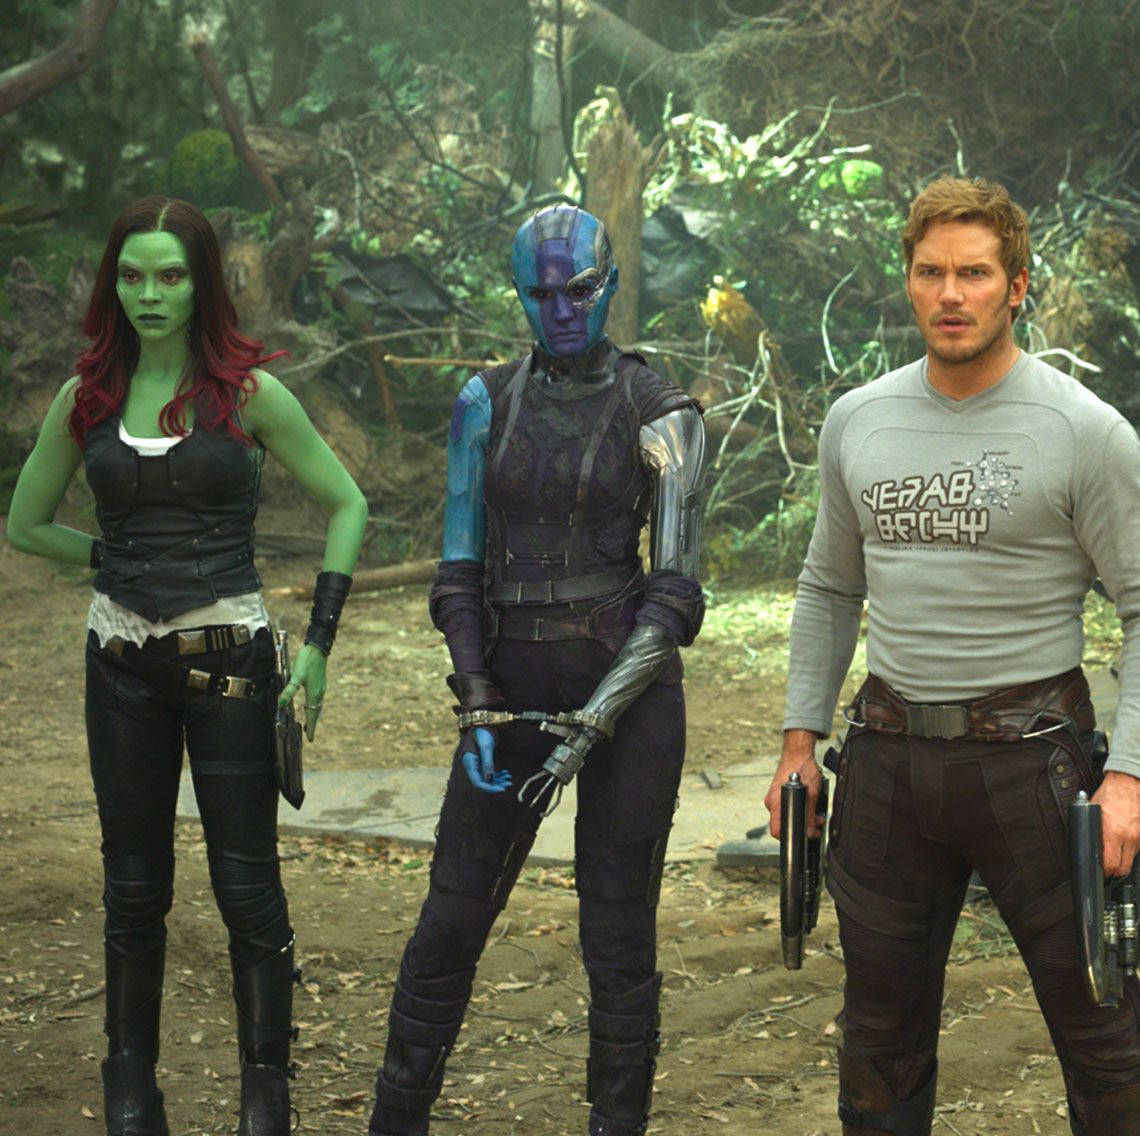 Avengers: Endgame directors aren't sure if major Guardians of the Galaxy character survived